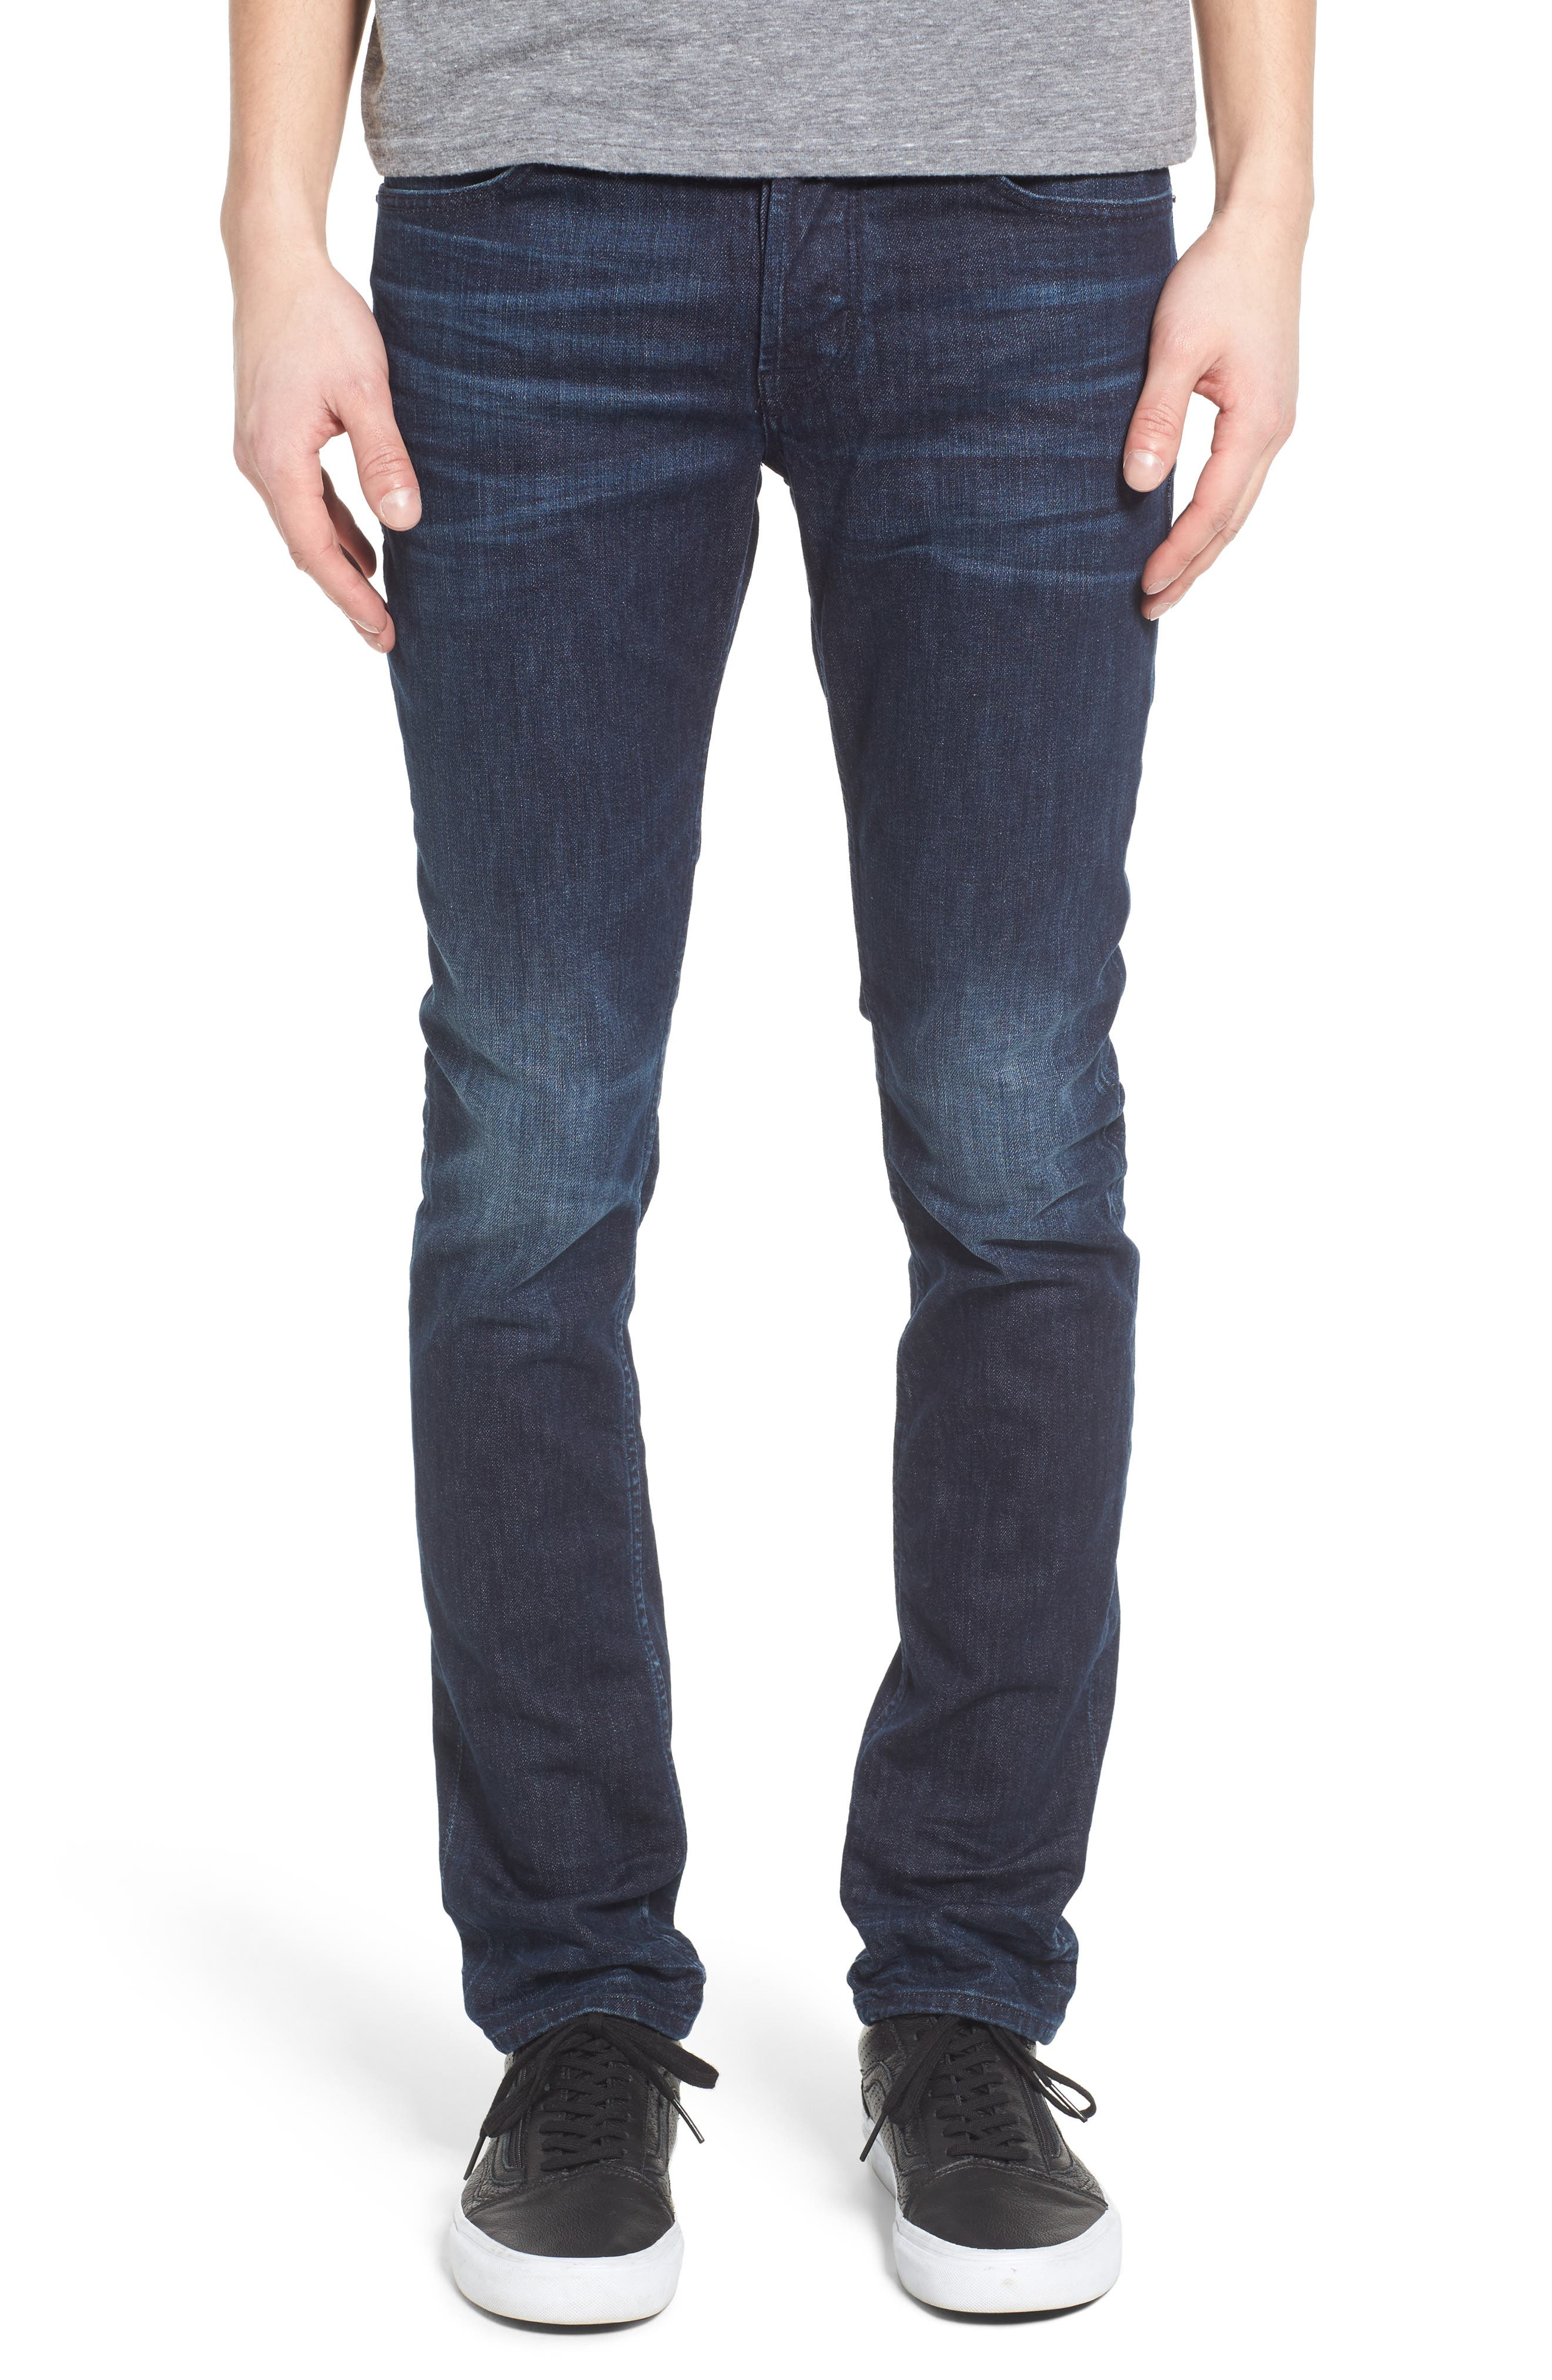 Alternate Image 1 Selected - Hudson Jeans Axl Skinny Fit Jeans (Glove Game)